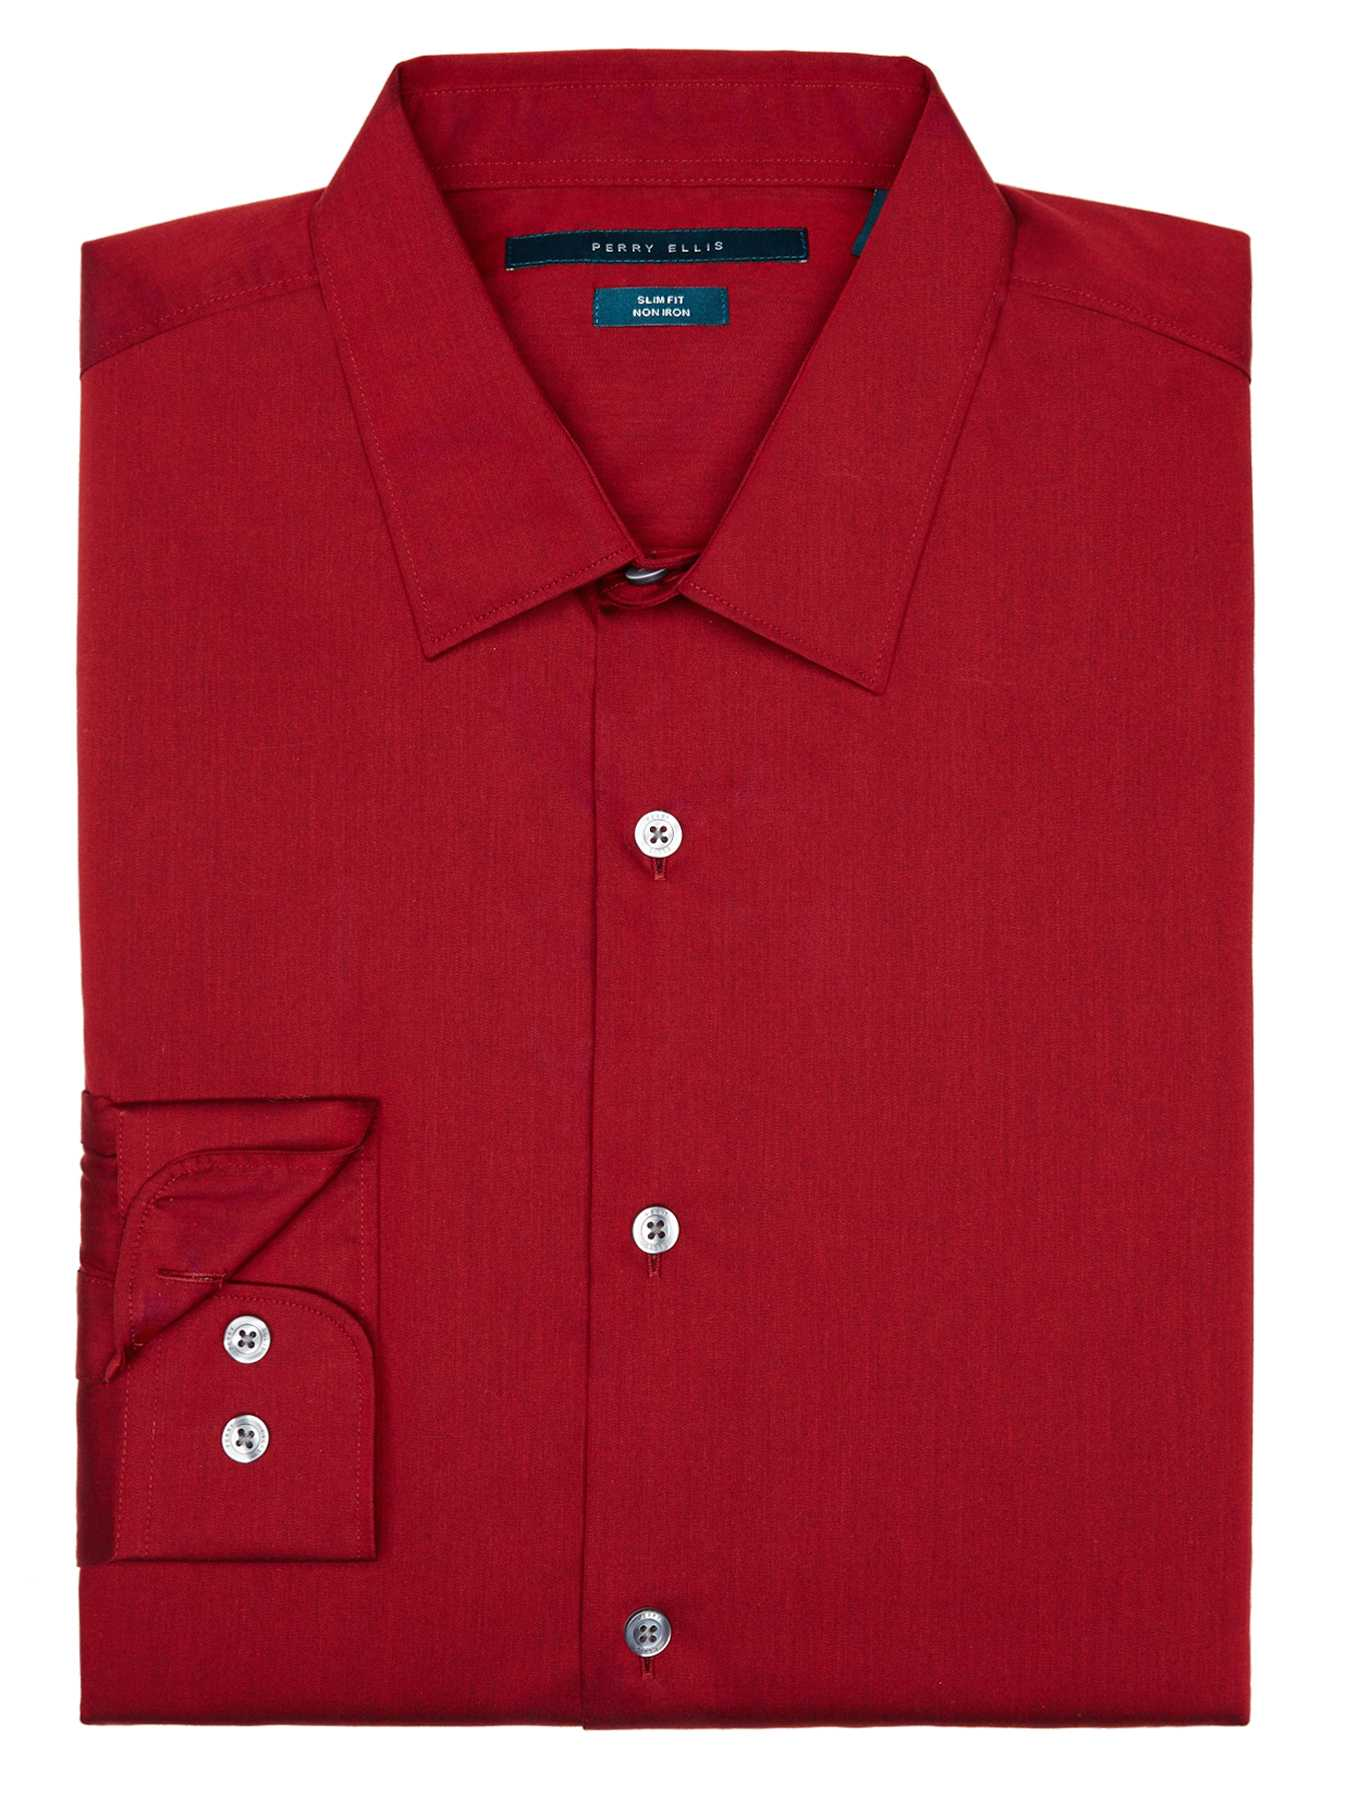 Perry Ellis Non-Iron Slim Fit Essential Shirt